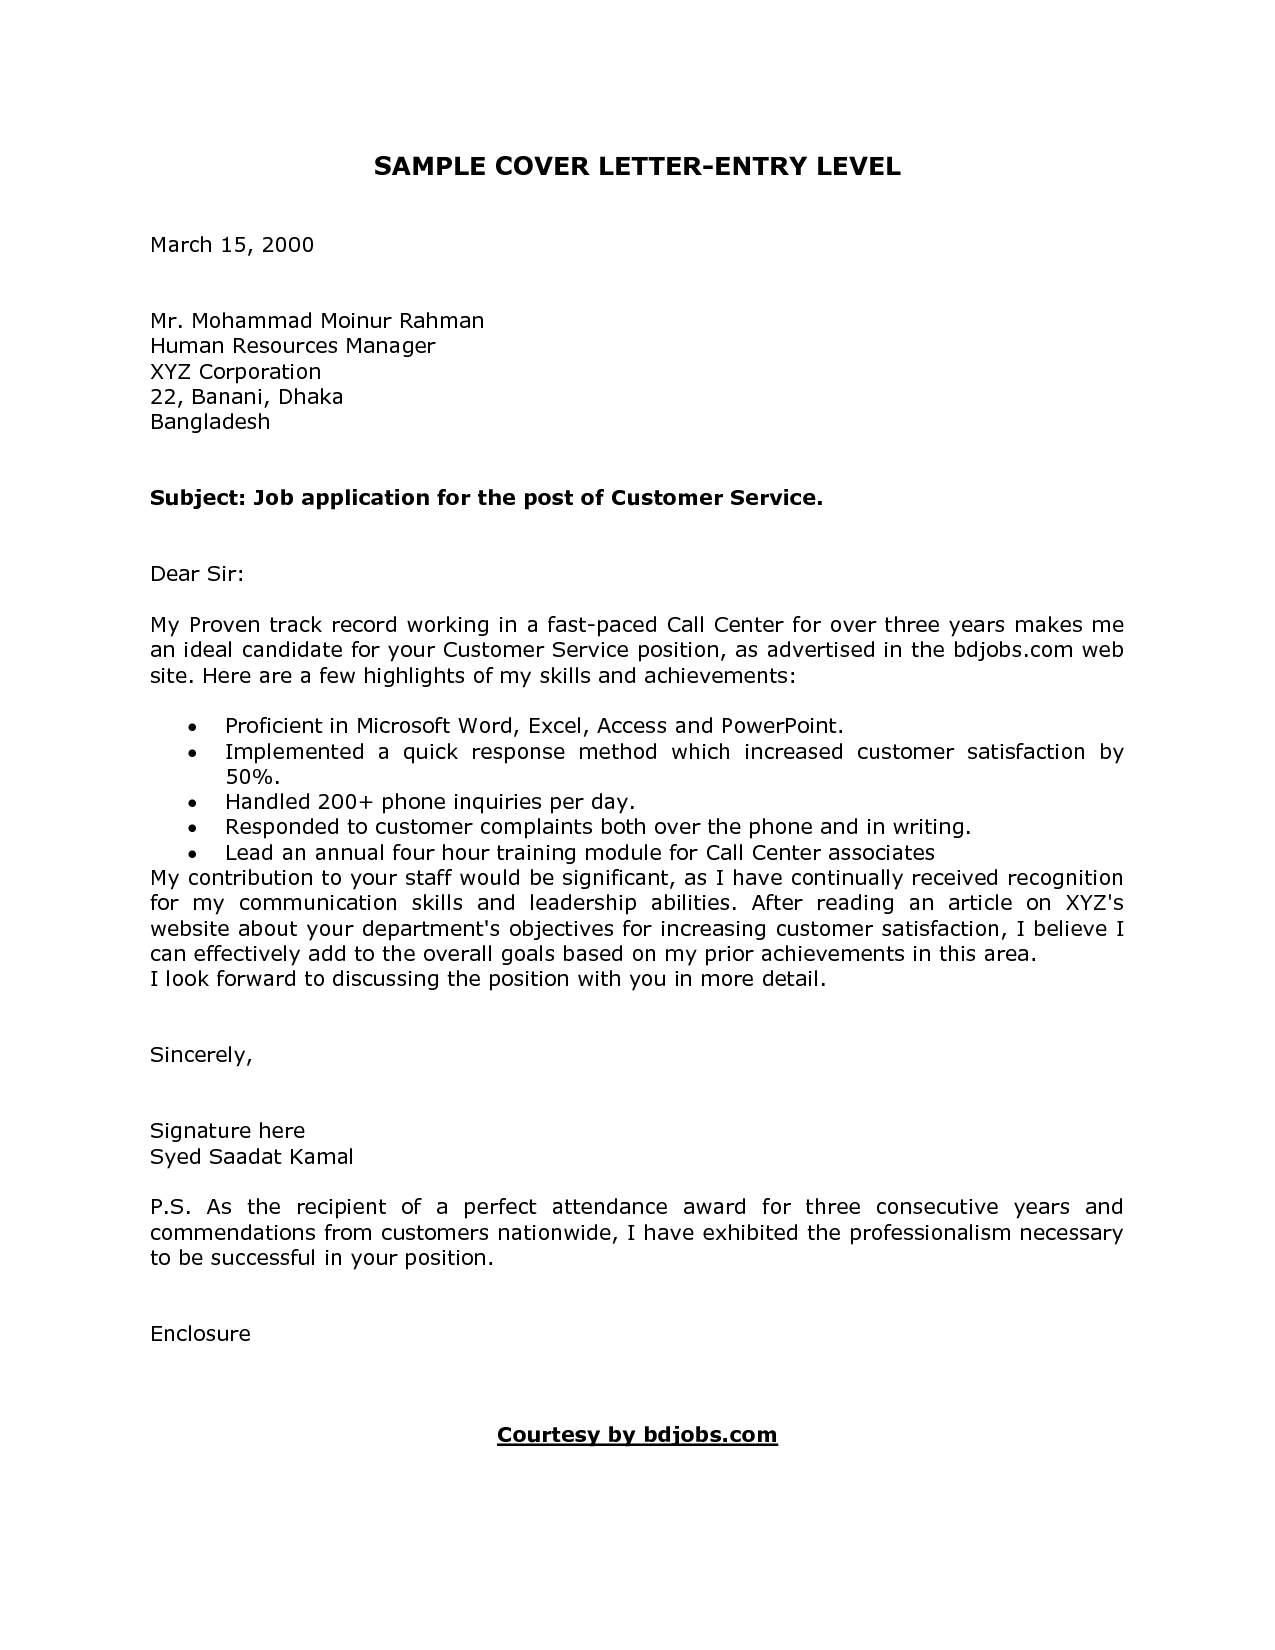 Charming Formal Cover Letter Sample For Entry Level Job Resume Writing Example Alexa